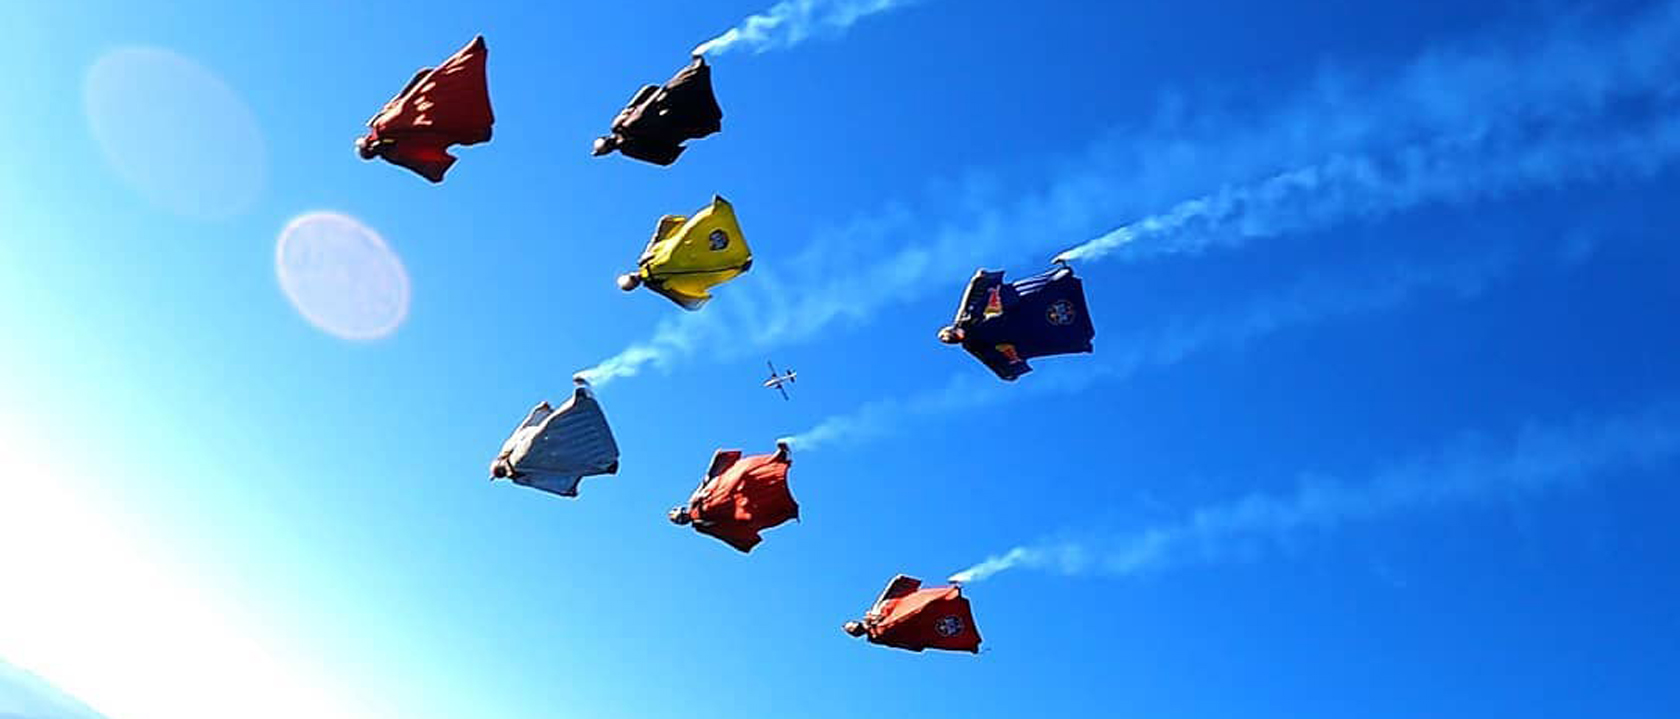 The Future of Wingsuits